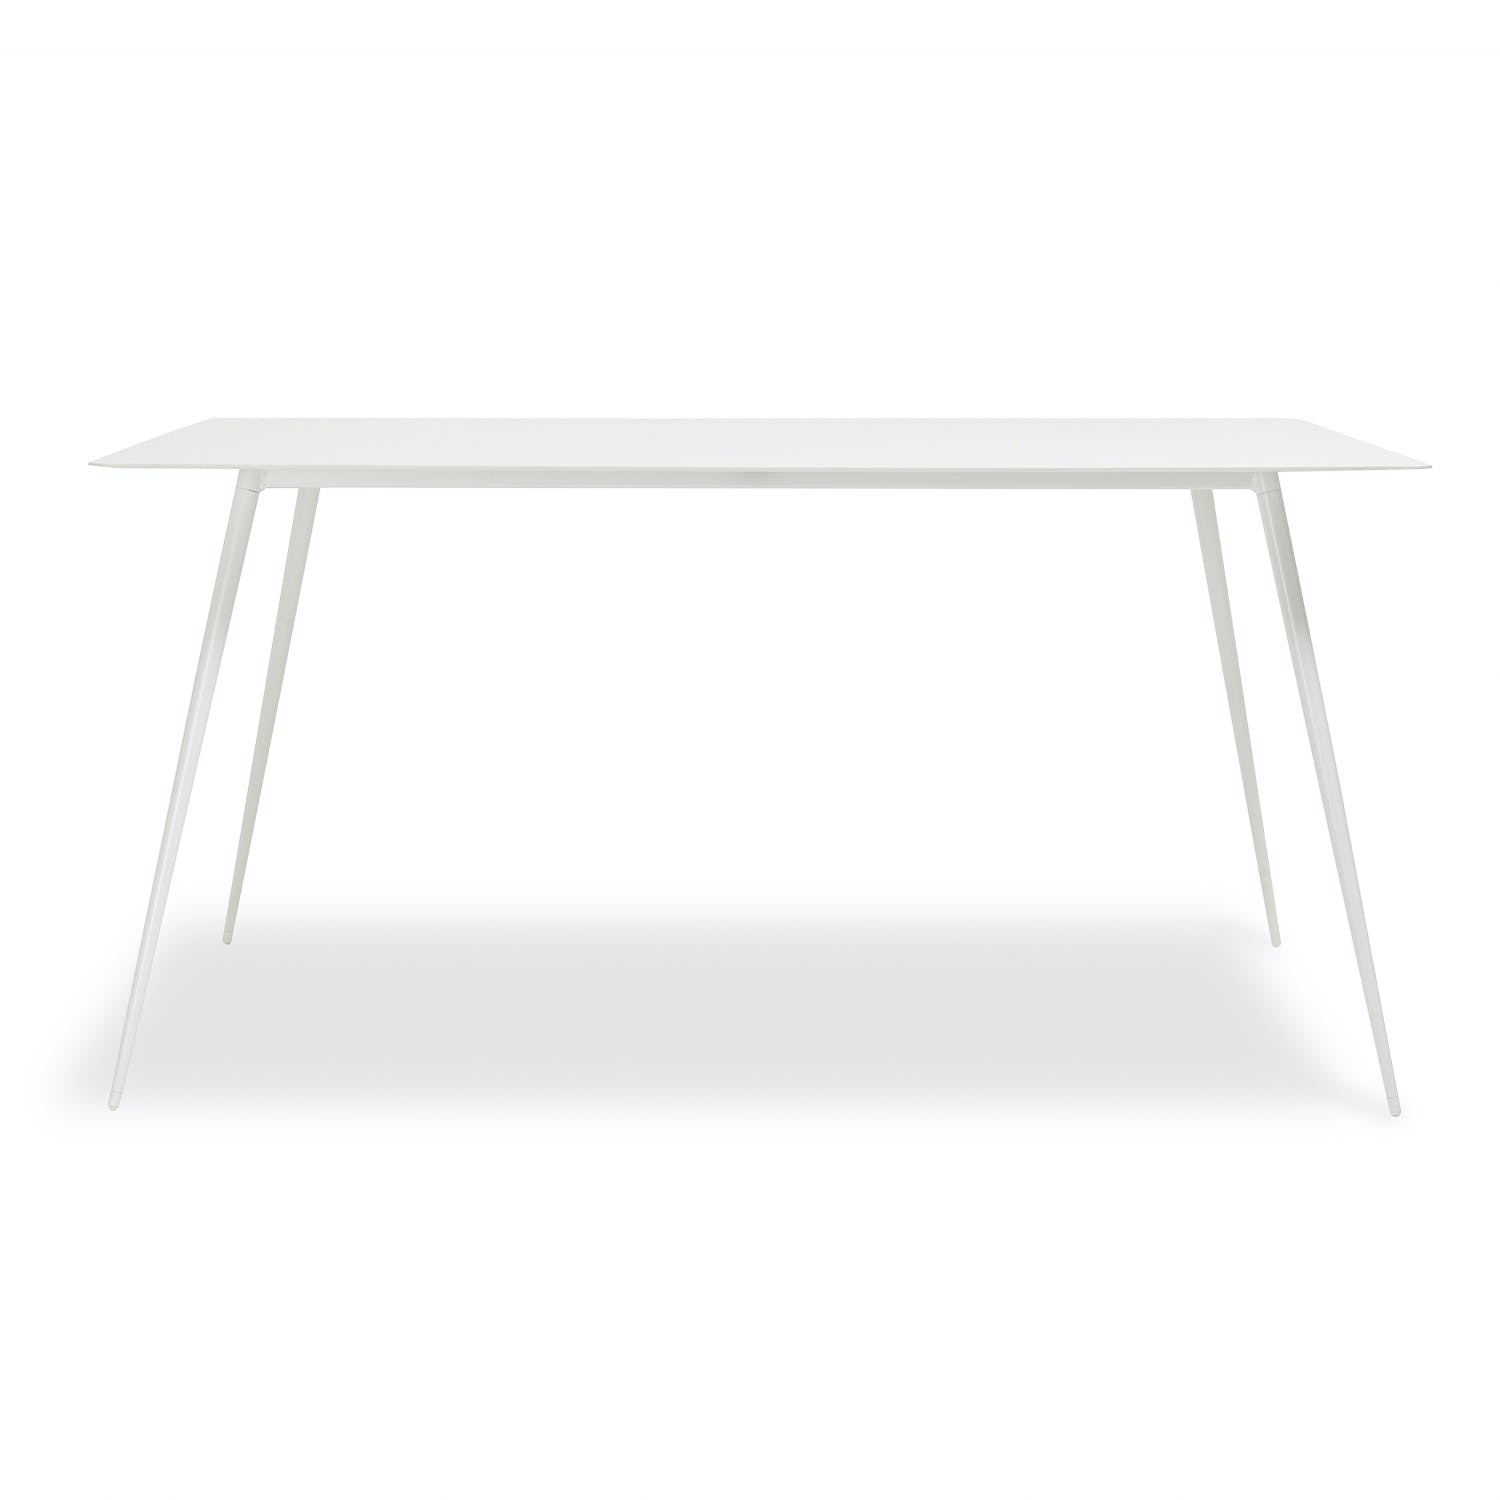 Product Image - Pulp Dining Table White